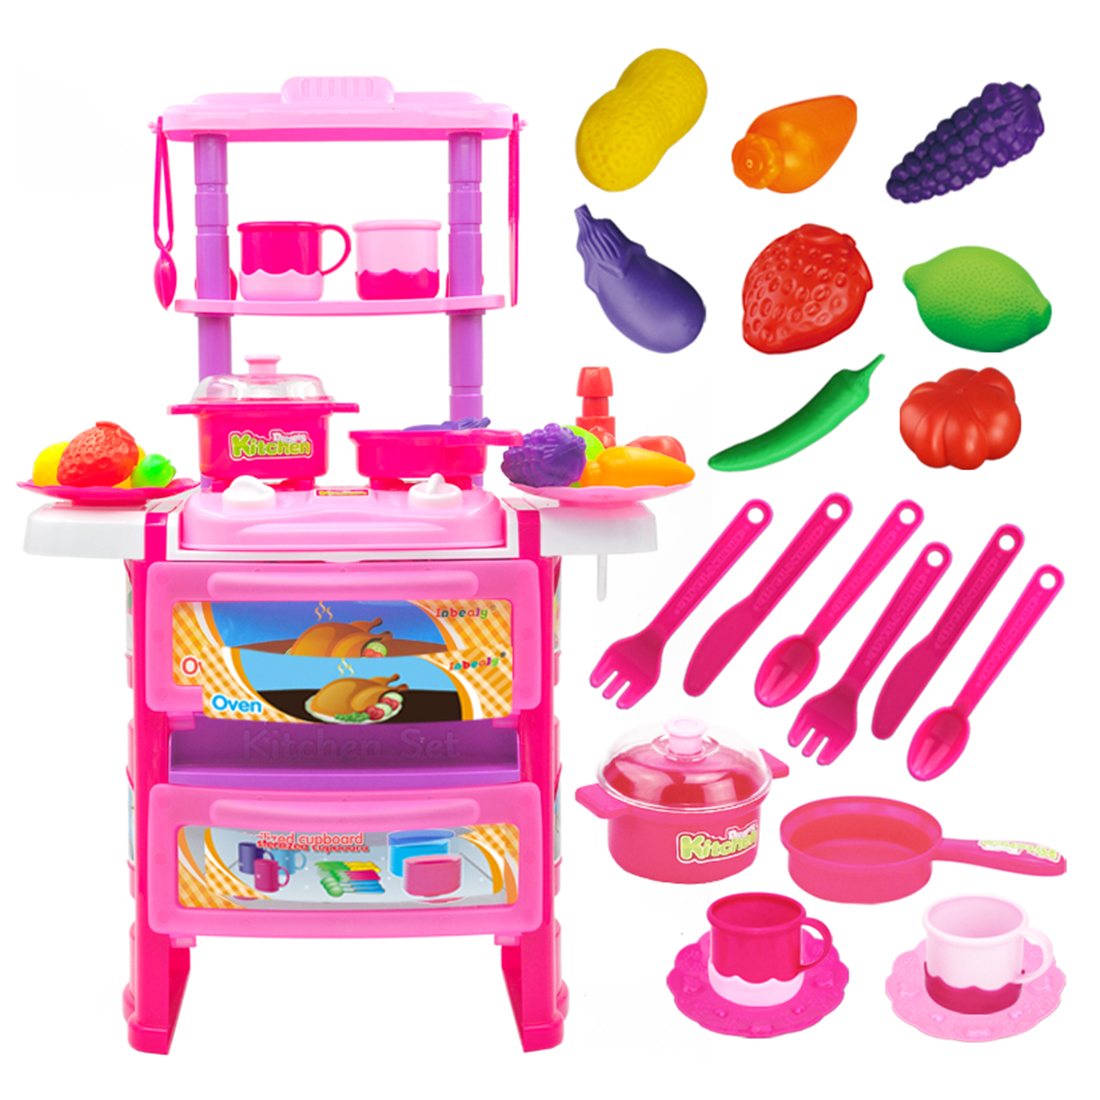 Surwish Children Funny Pretend & Play Toy Emulational Dining Table Kitchenware Set with Acousto-opticalSurwish Children Funny Pretend & Play Toy Emulational Dining Table Kitchenware Set with Acousto-optical